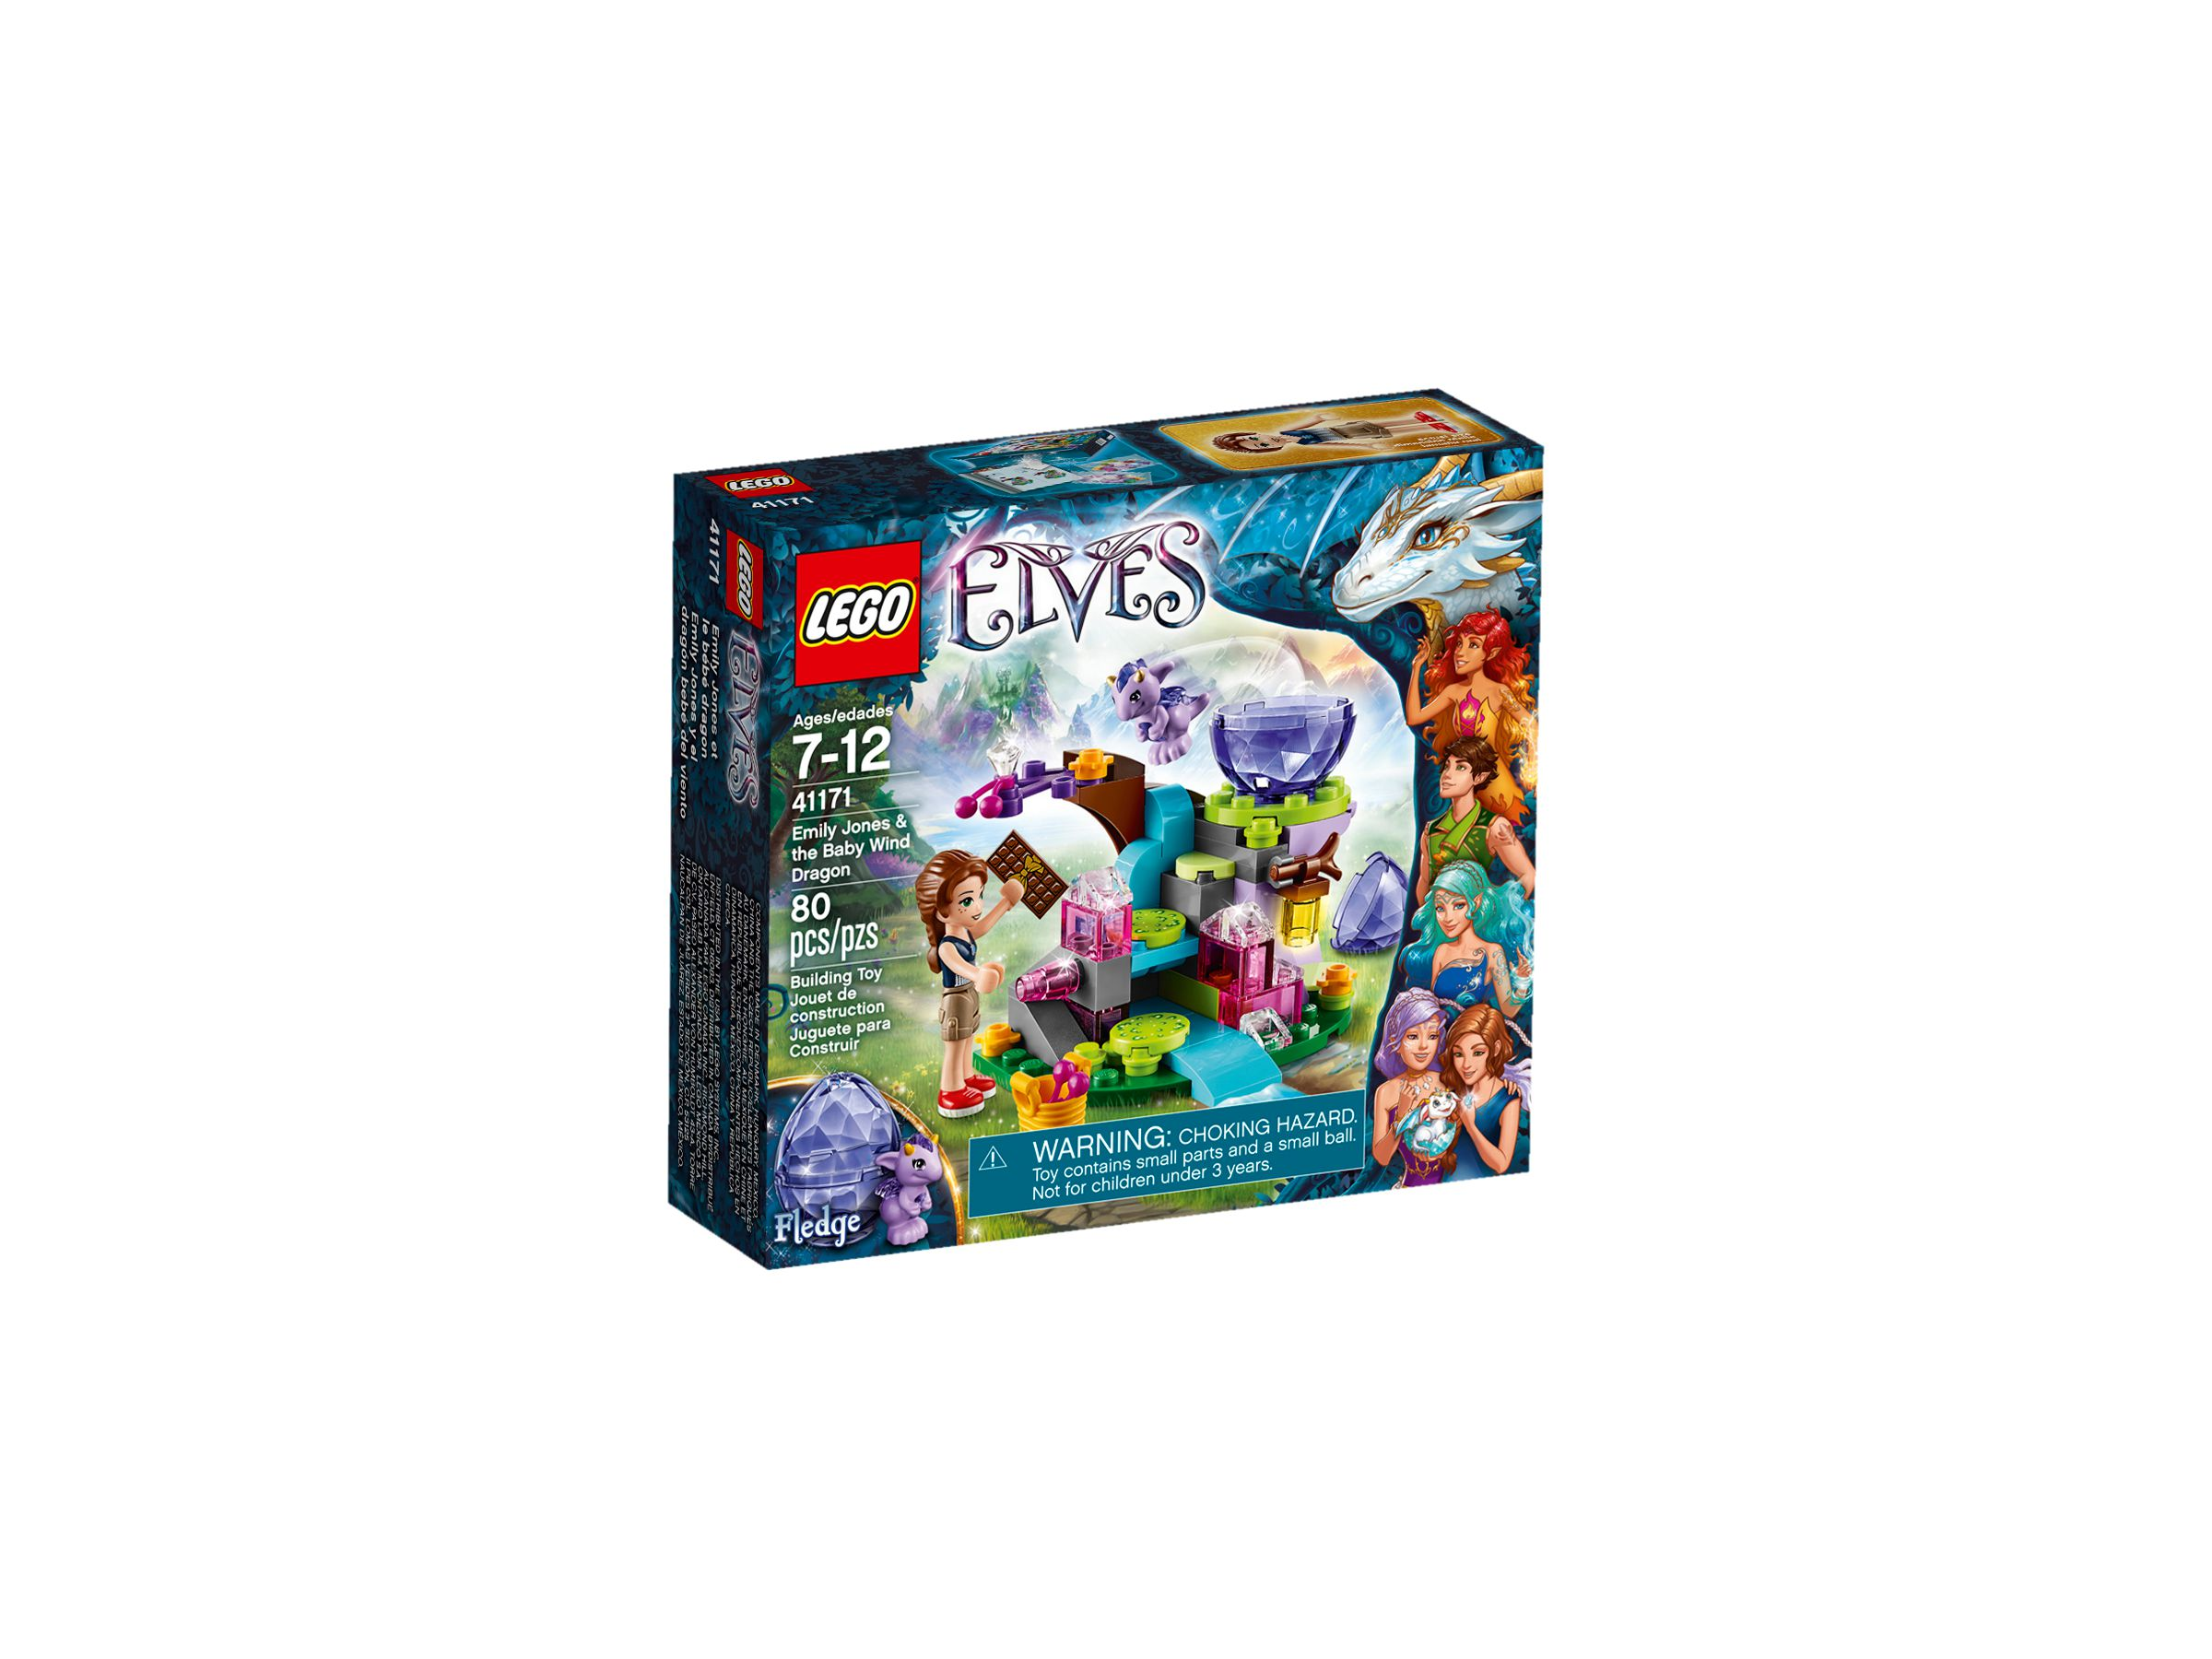 LEGO Elves 41171 Emily Jones & das Winddrachen-Baby LEGO_41171_alt1.jpg